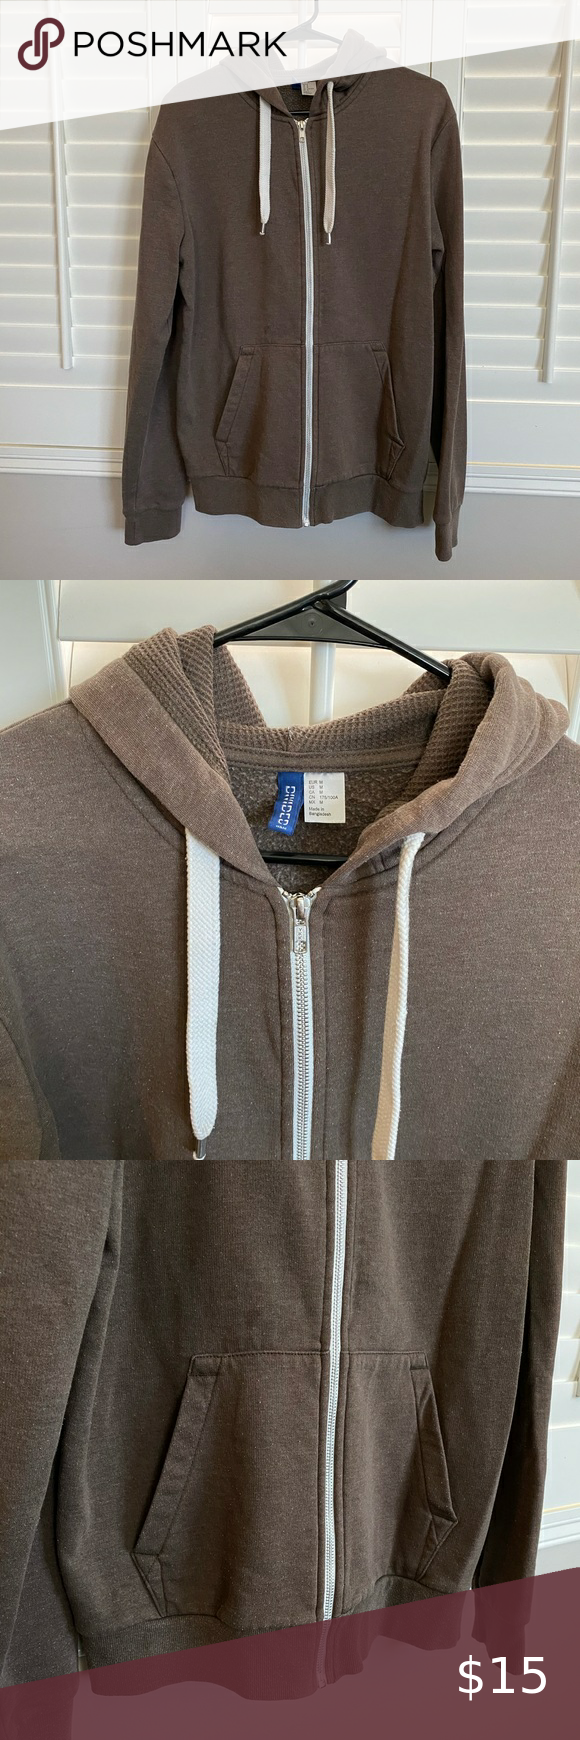 H M Divided Zip Hoodie Men S Zip Hoodie Size M Great Condition Tan Color H M Shirts Sweatshirts Hoodies Zip Hoodie Hoodies Brown Hoodie [ 1740 x 580 Pixel ]